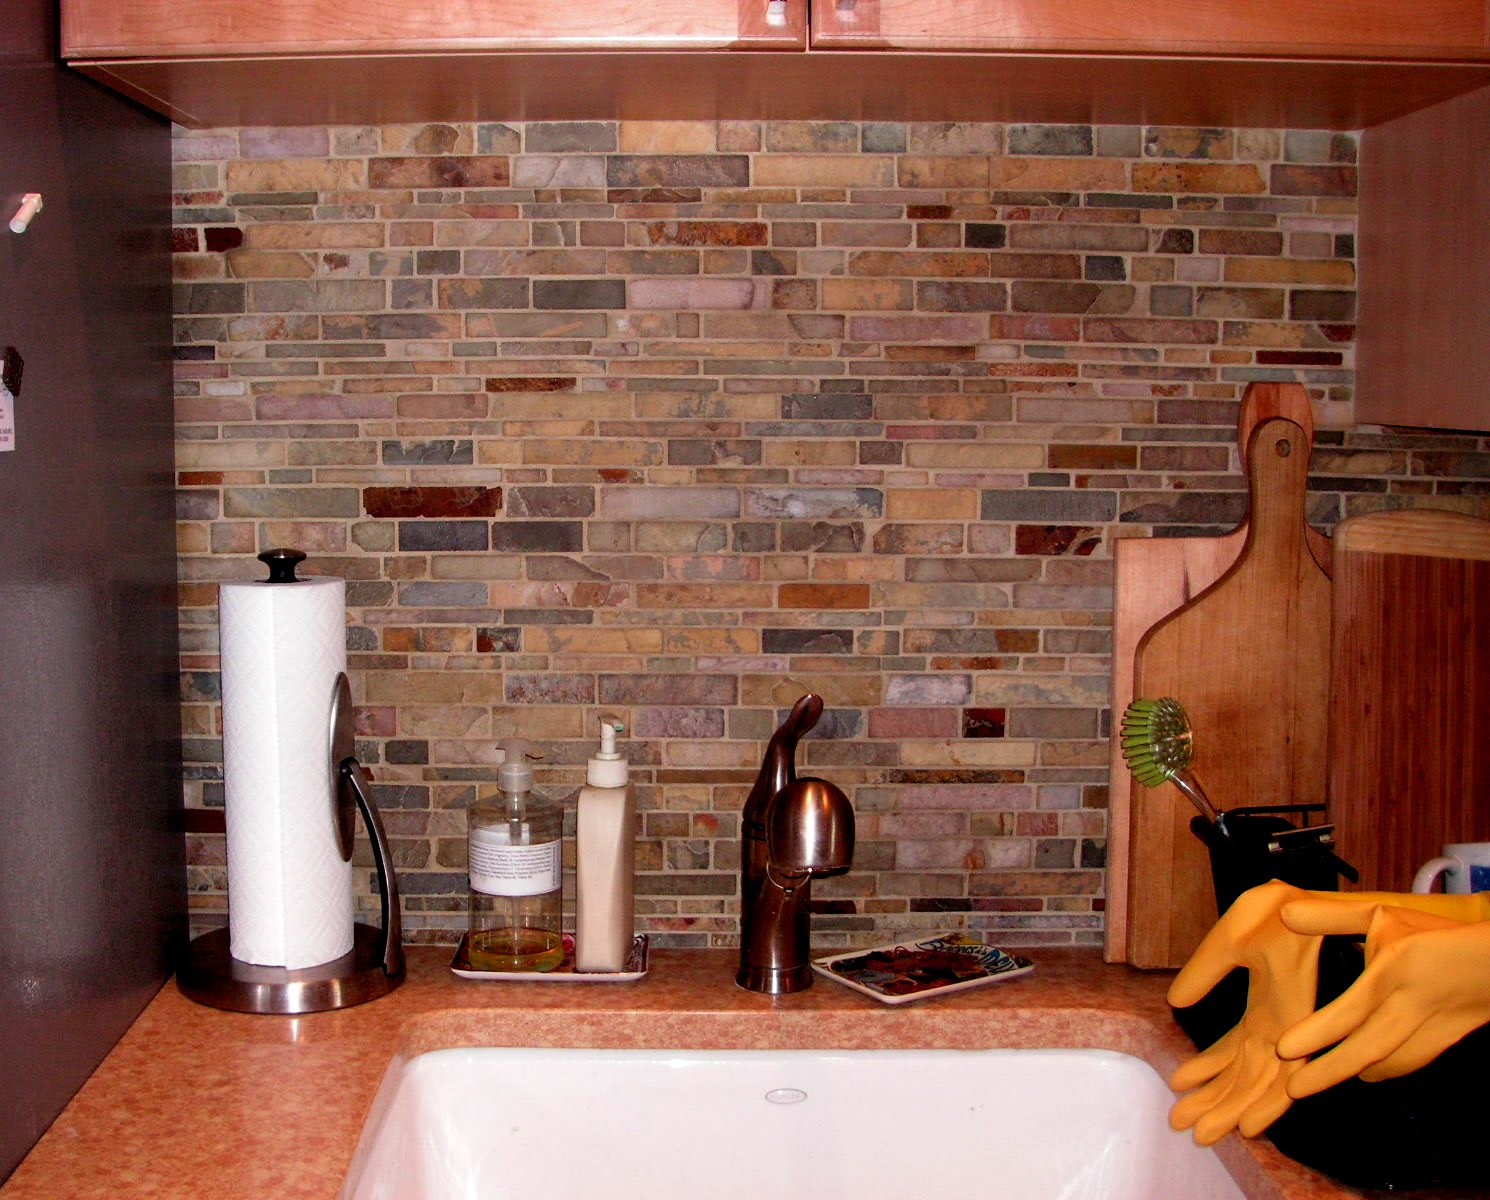 Color forte july 2010 Backsplash wall tile